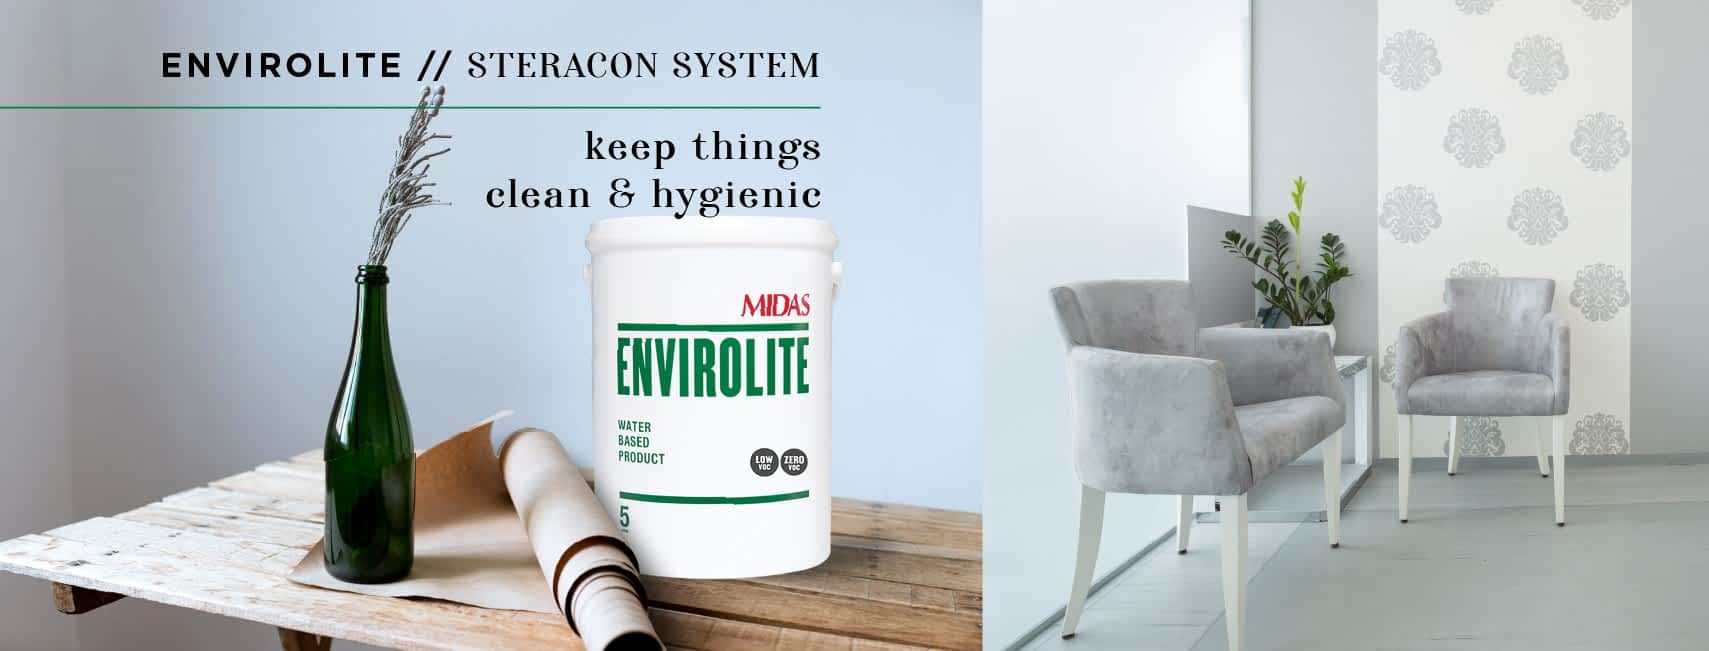 Steracon Byotrol Decontamination System anti-microbial, anti-bacterial, anti-fungal paint